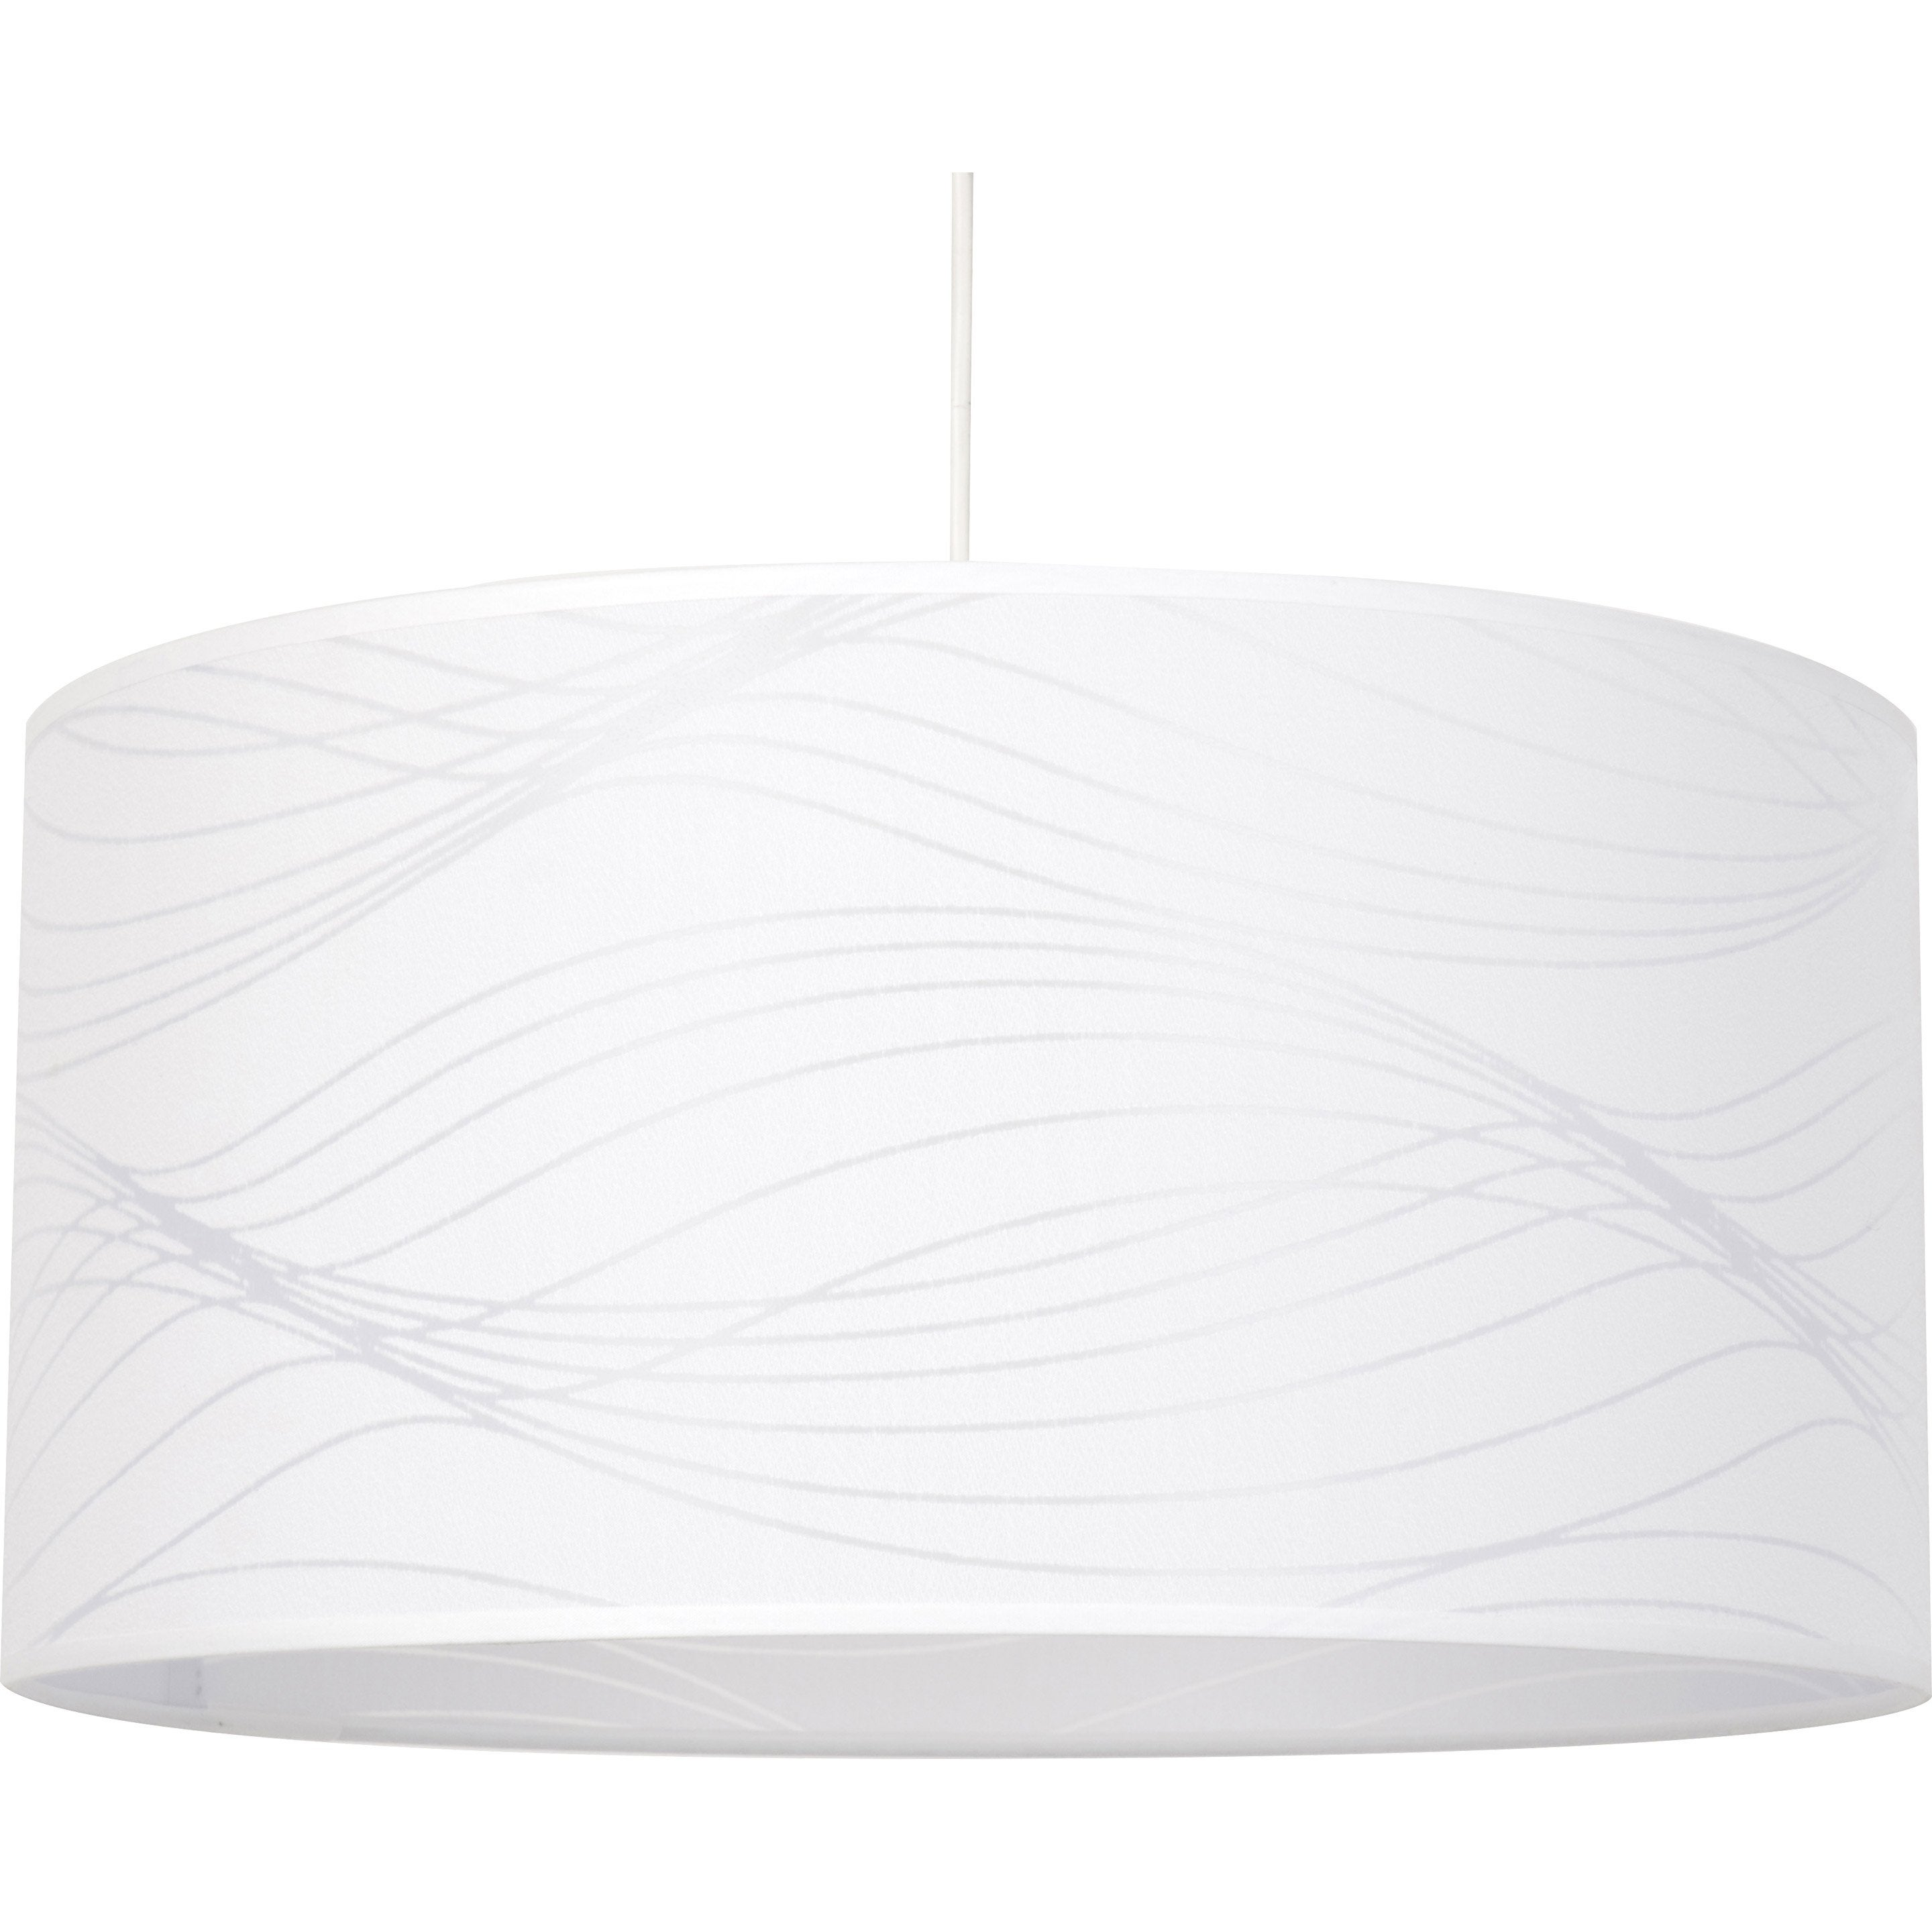 Suspension, e27 design Lignes coton blanc 1 x 100 W COREP